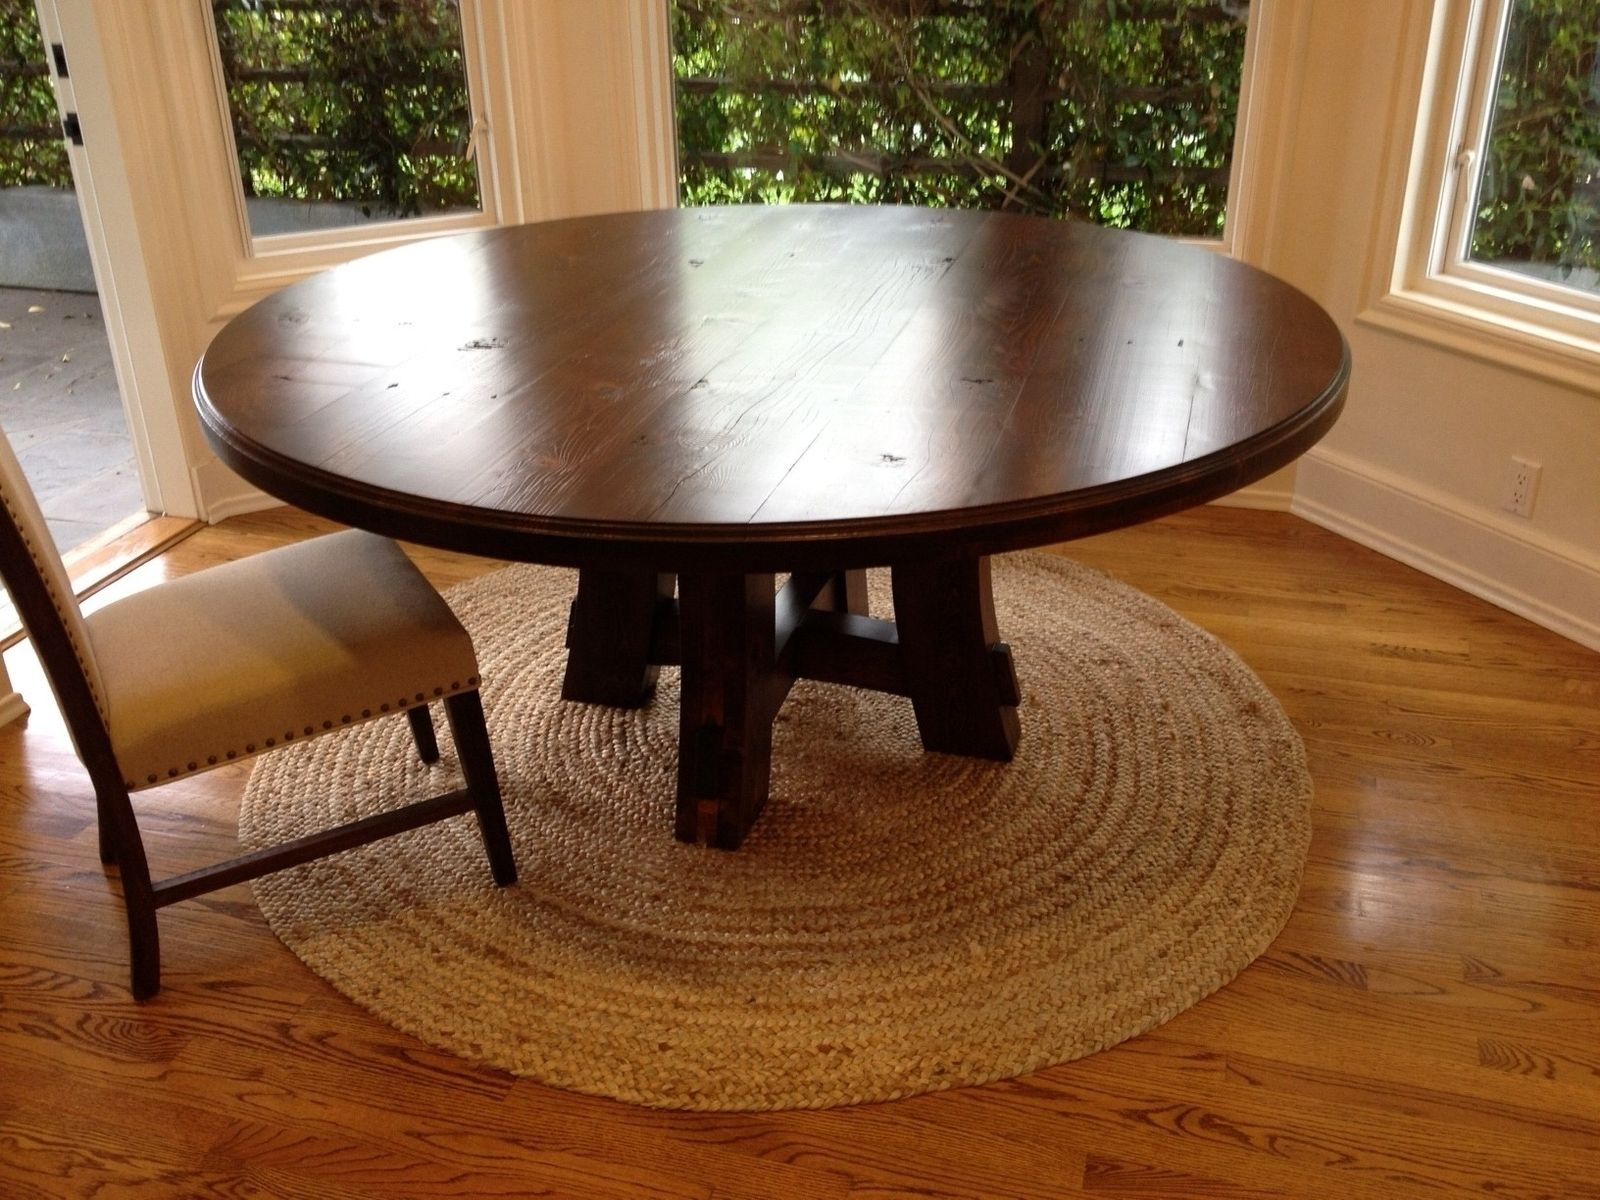 custom carruthers 70 round table by farmhouse table company. Black Bedroom Furniture Sets. Home Design Ideas